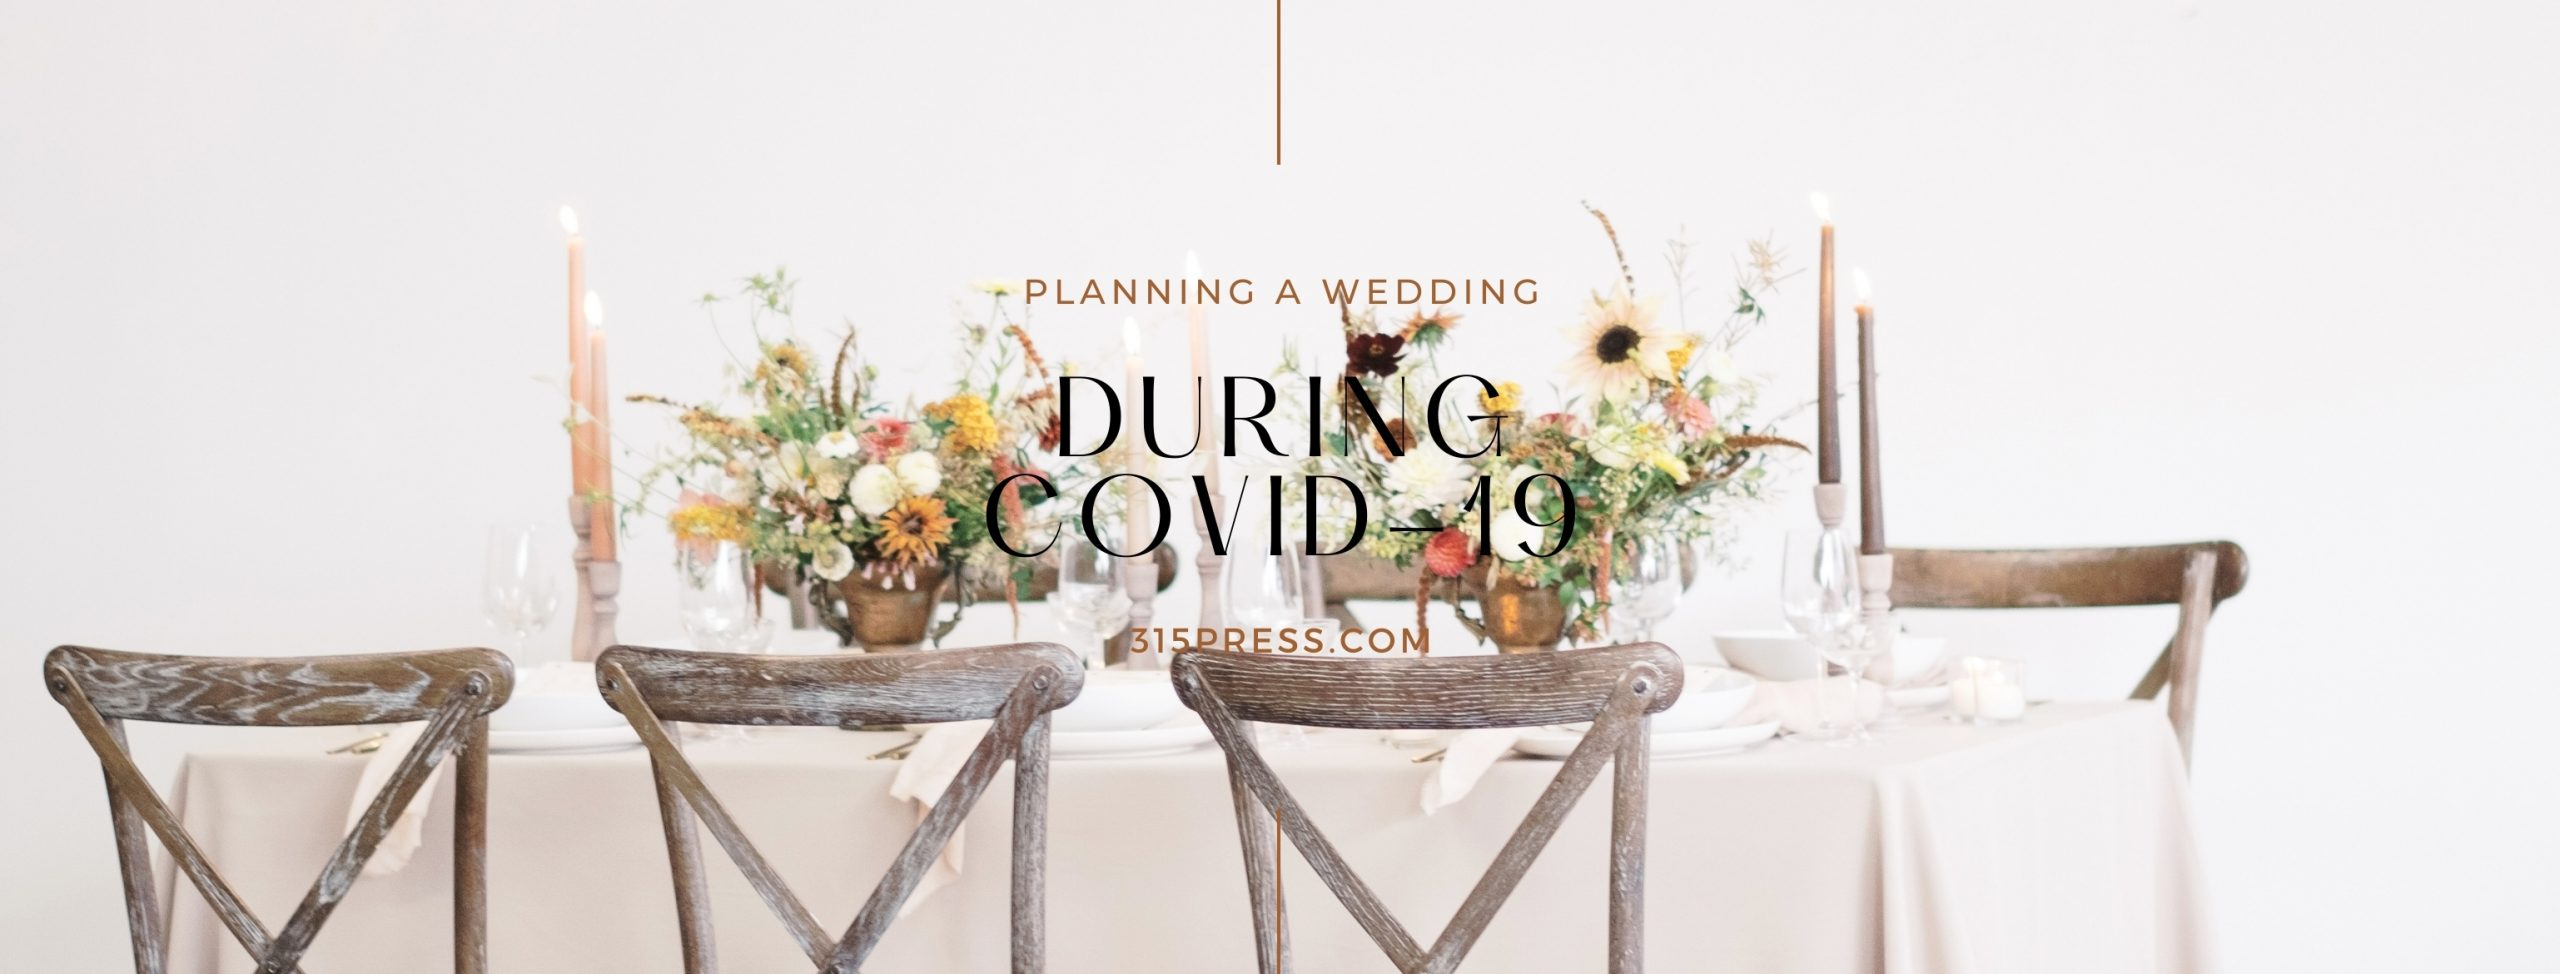 Planning a wedding during COVID-19 – how to work around potential disruption